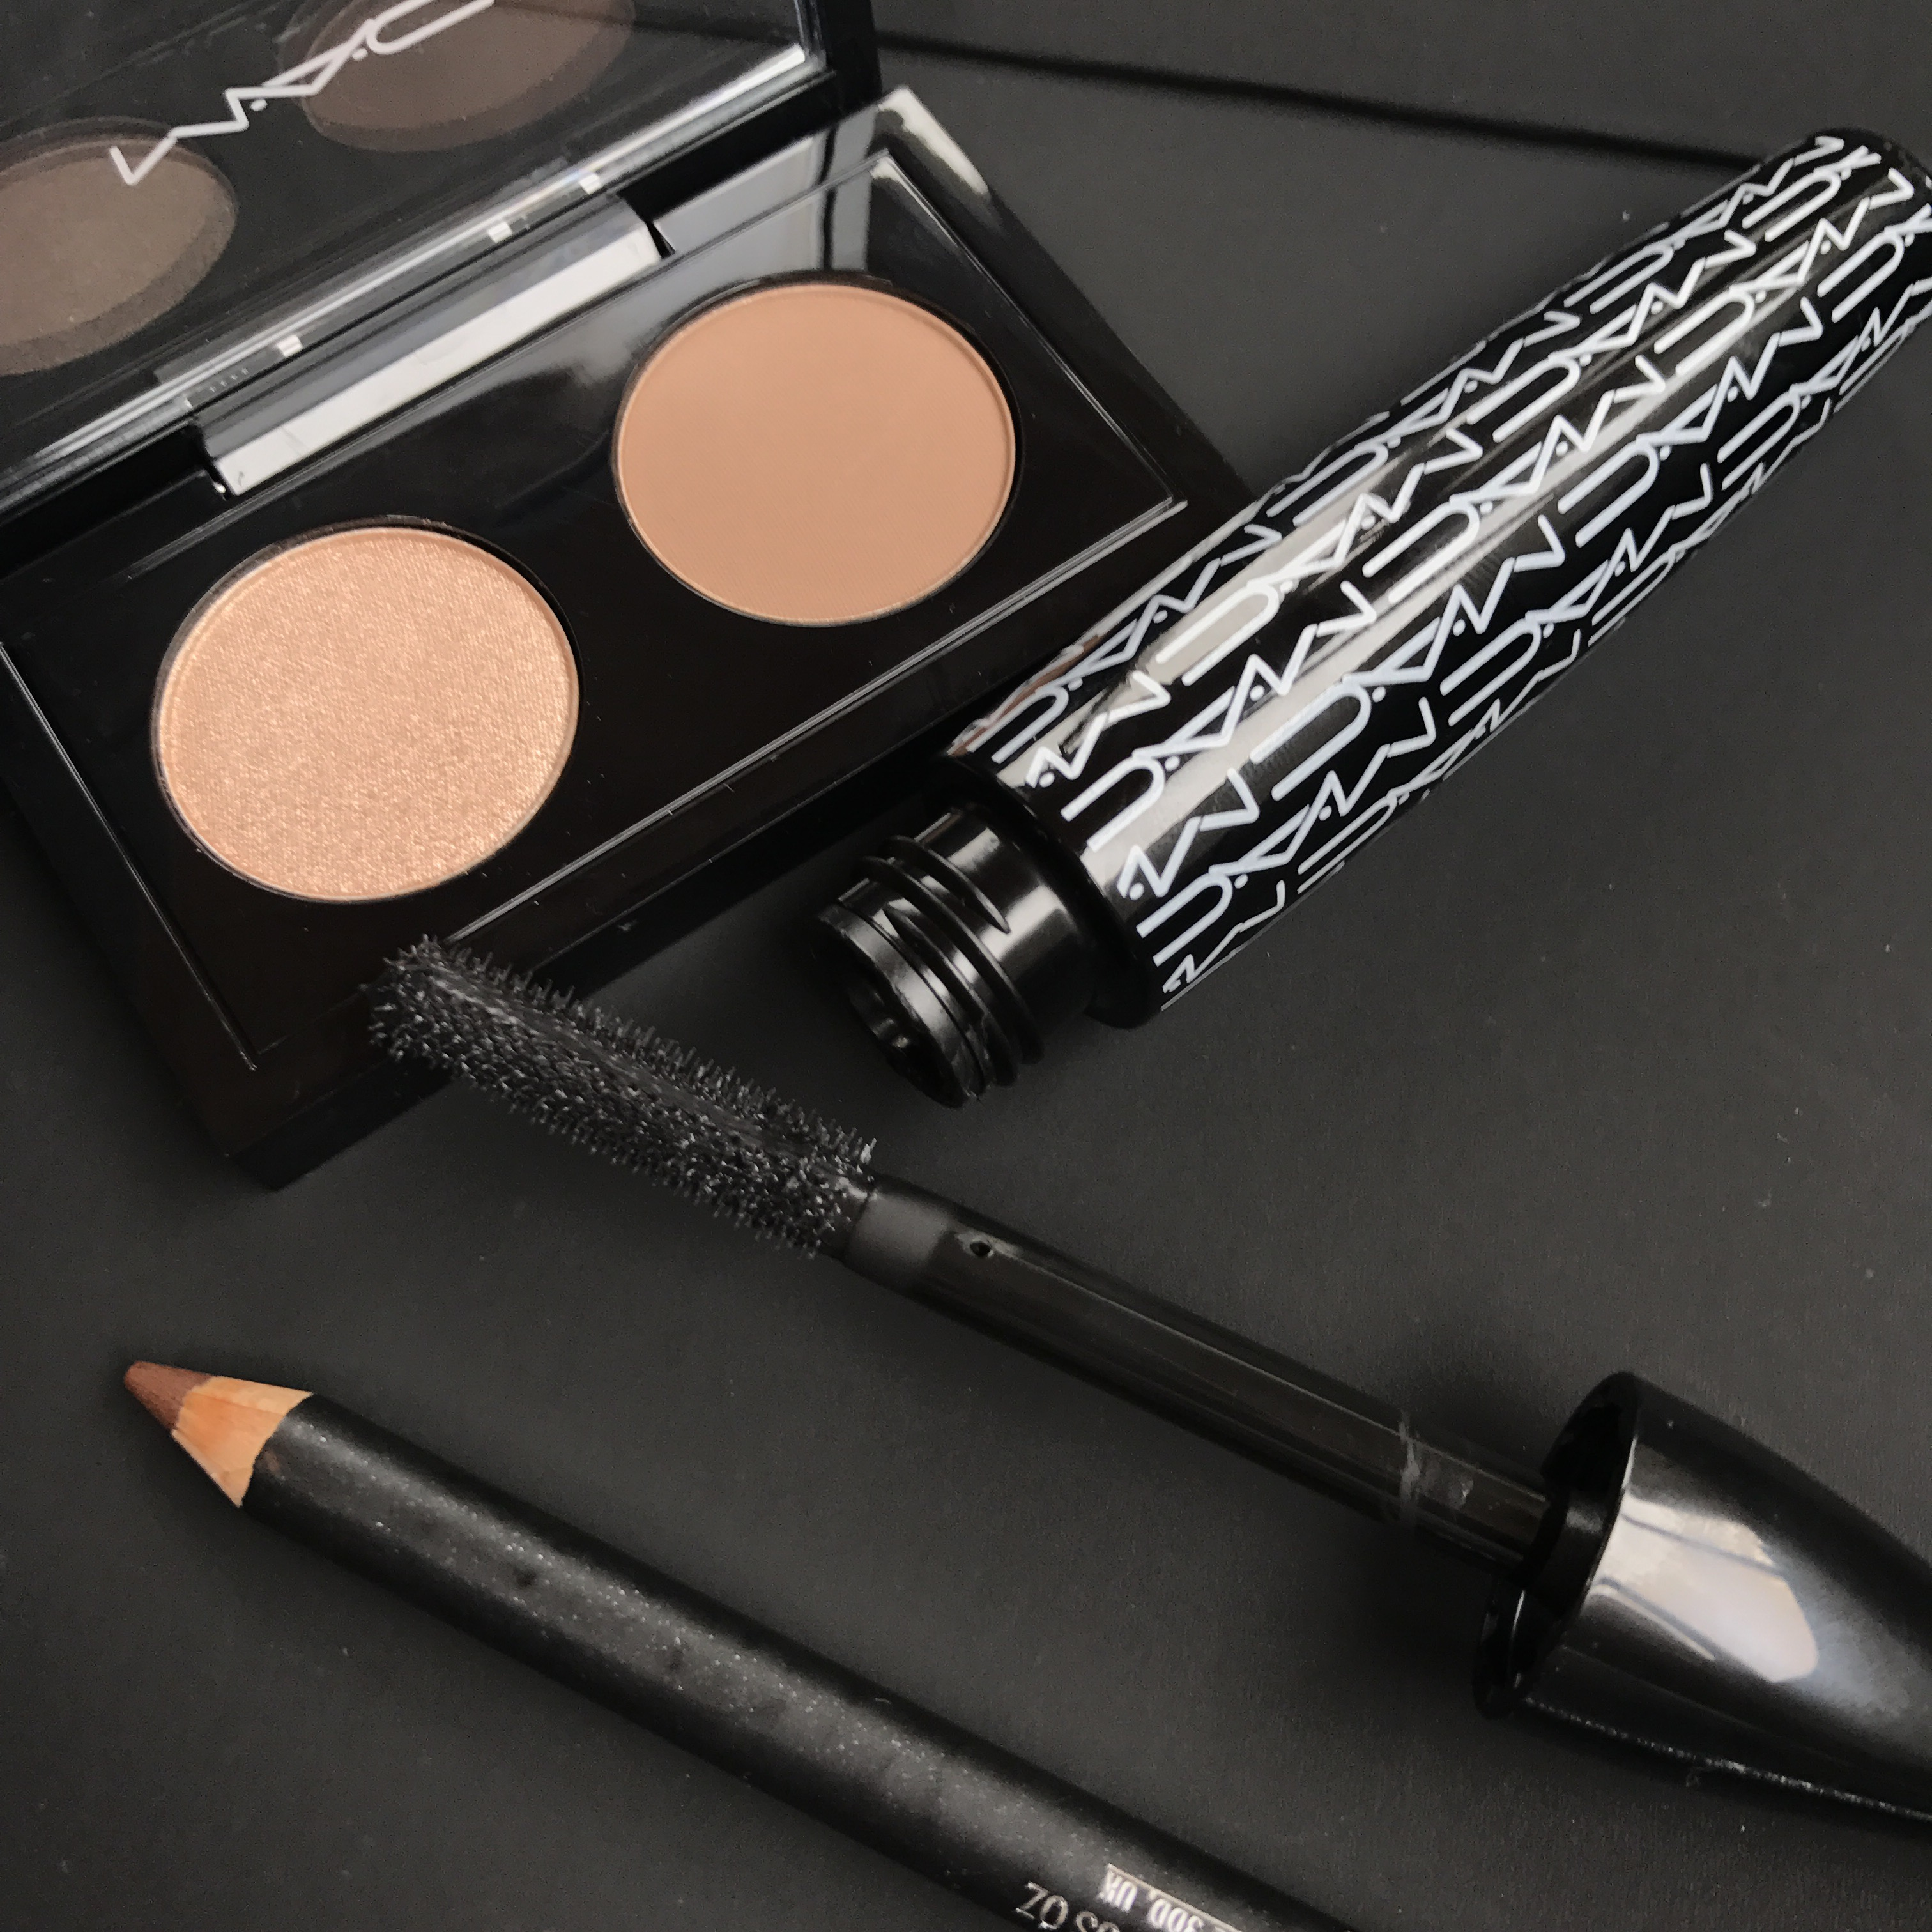 mac cosmetics have grown a cult following over the past two decades i bought my first product at 17 years of age 14 years ago i have been addicted ever - Makeup Must Haves